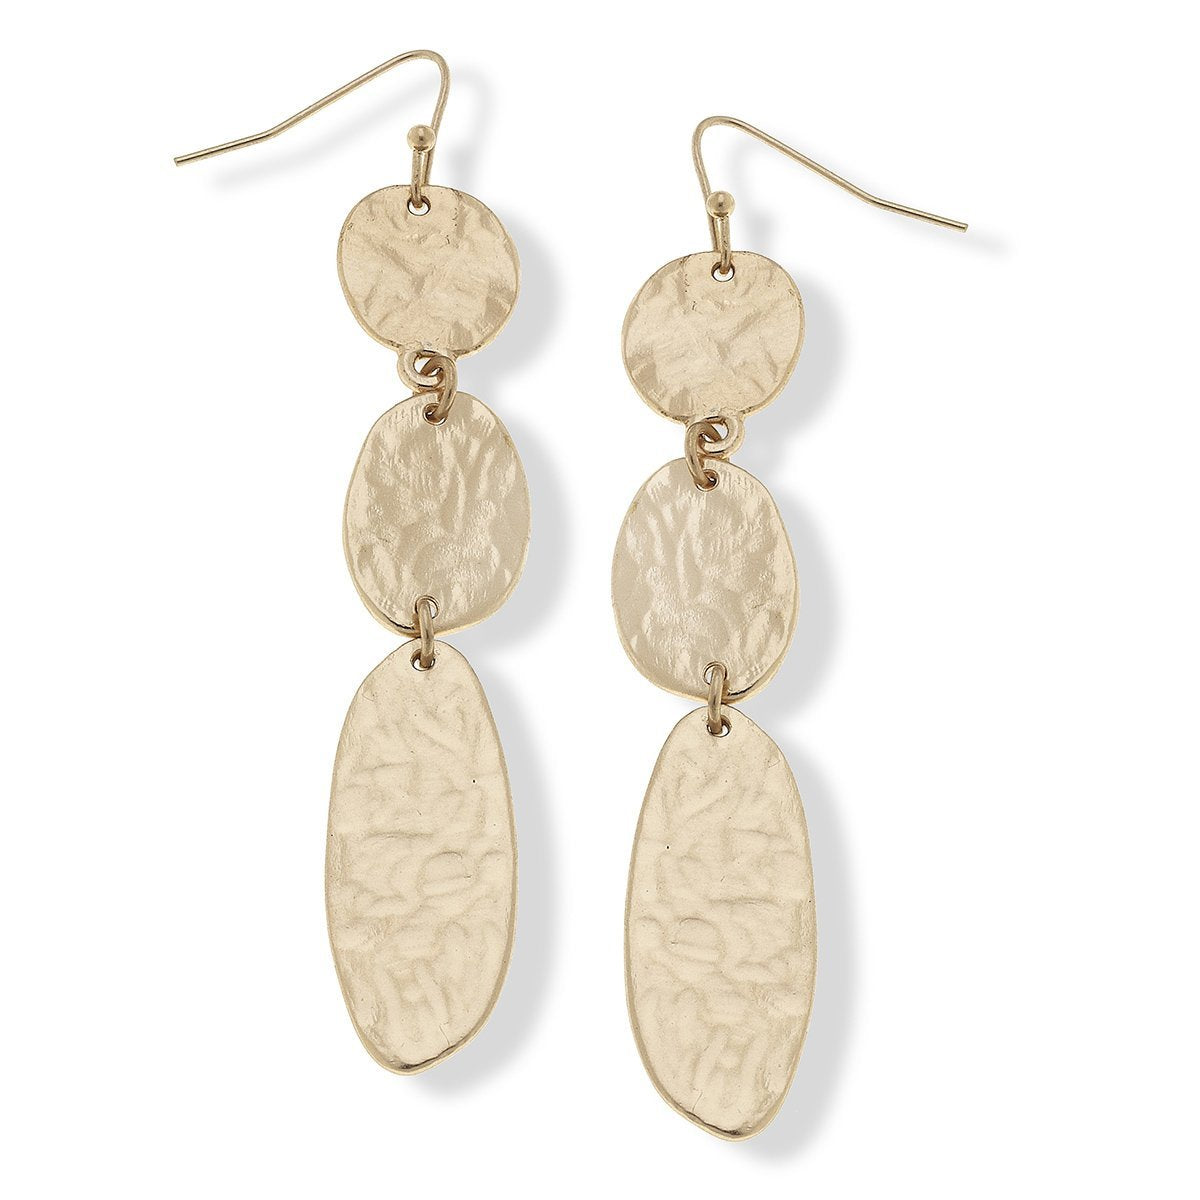 Harlow Linked Drop Earrings in Worn Gold